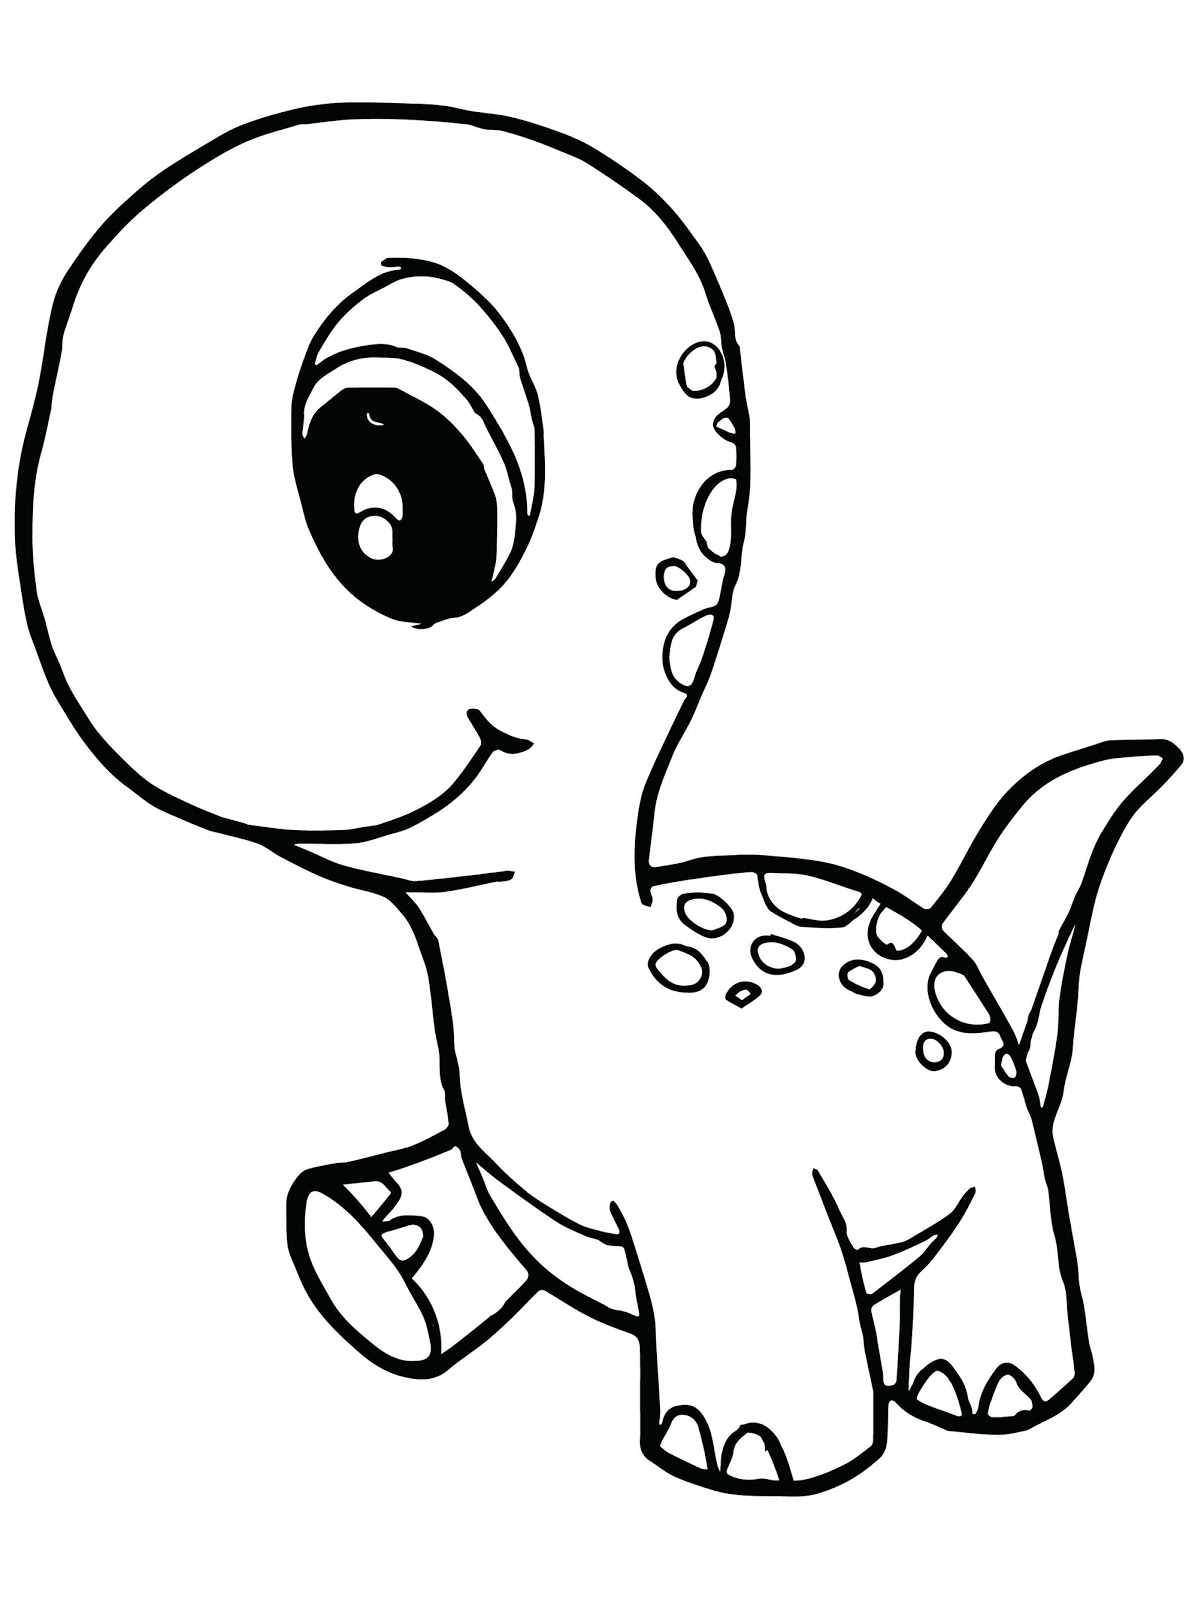 Dinosaurs coloring pages 55